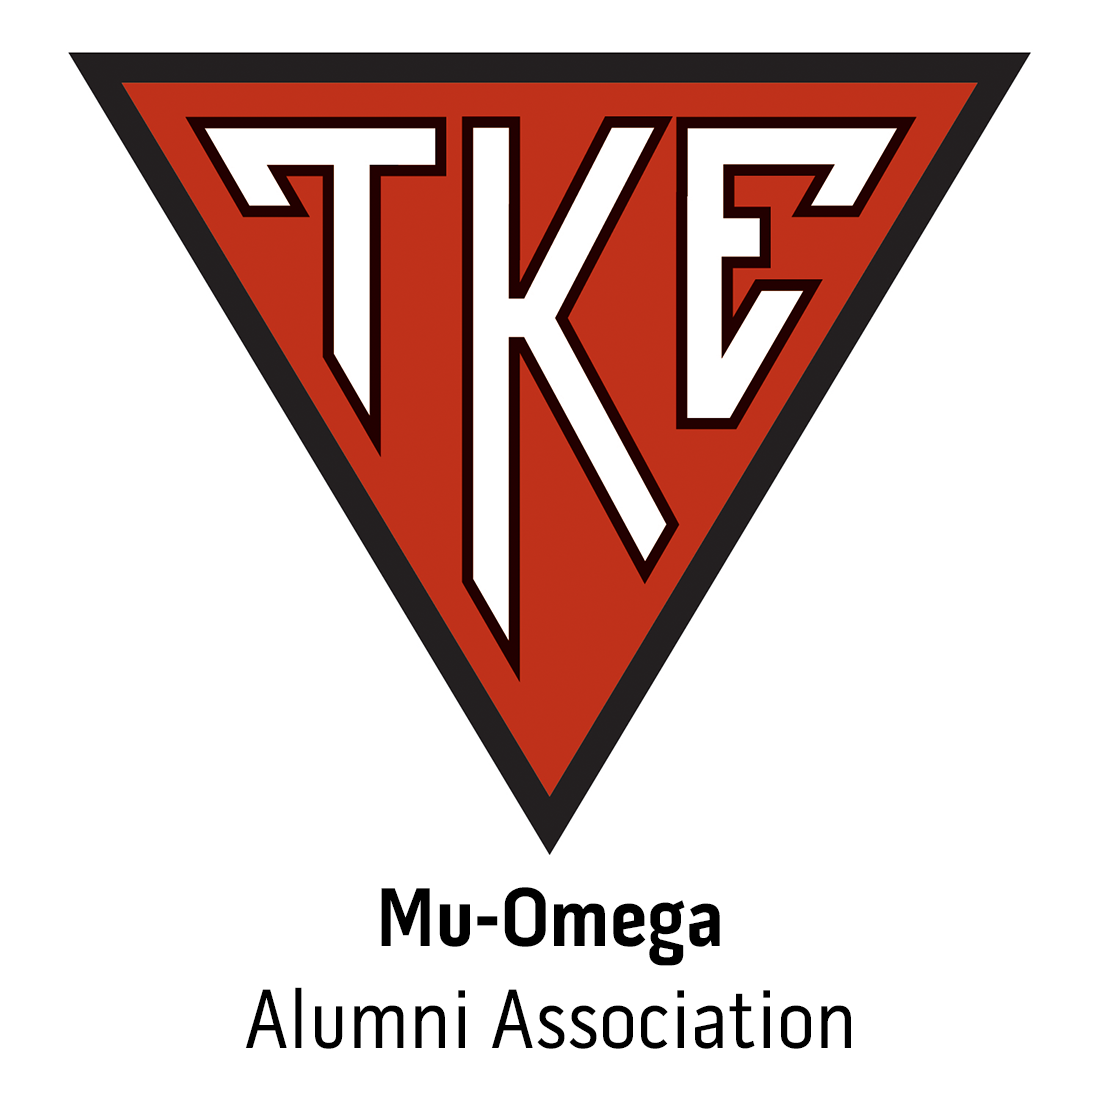 Mu-Omega Alumni Association at George Mason University